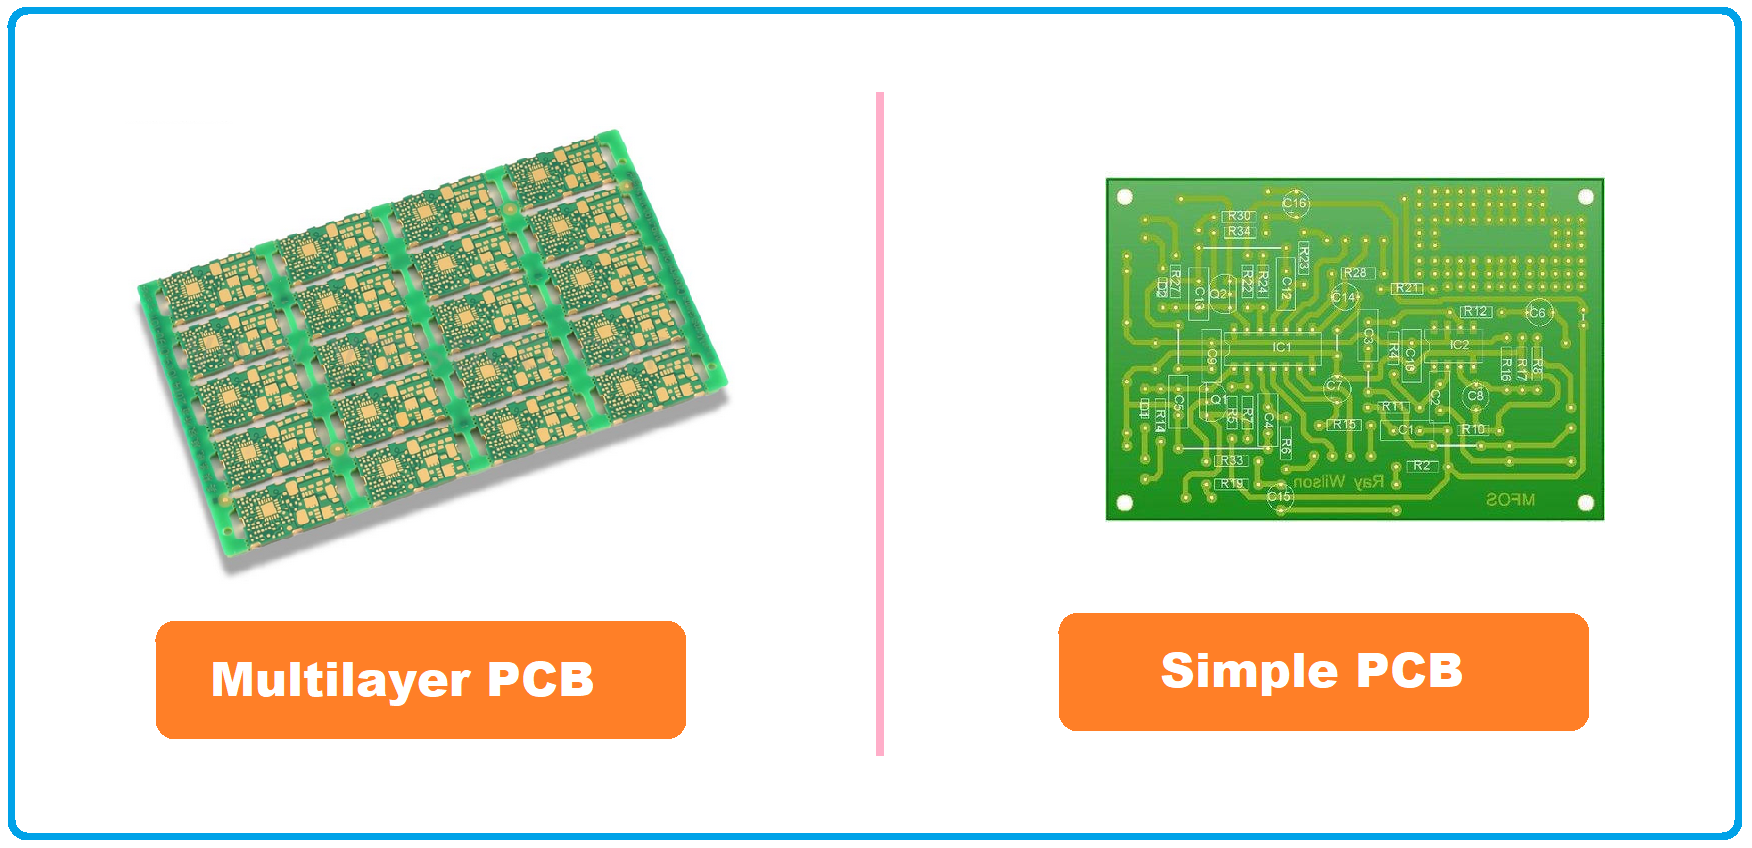 Multilayer PCB, what is Multilayer PCB, Multilayer PCB basics, Multilayer PCB examples, Multilayer PCB applications, multilayer pcb manufacturing process, multilayer pcb definition